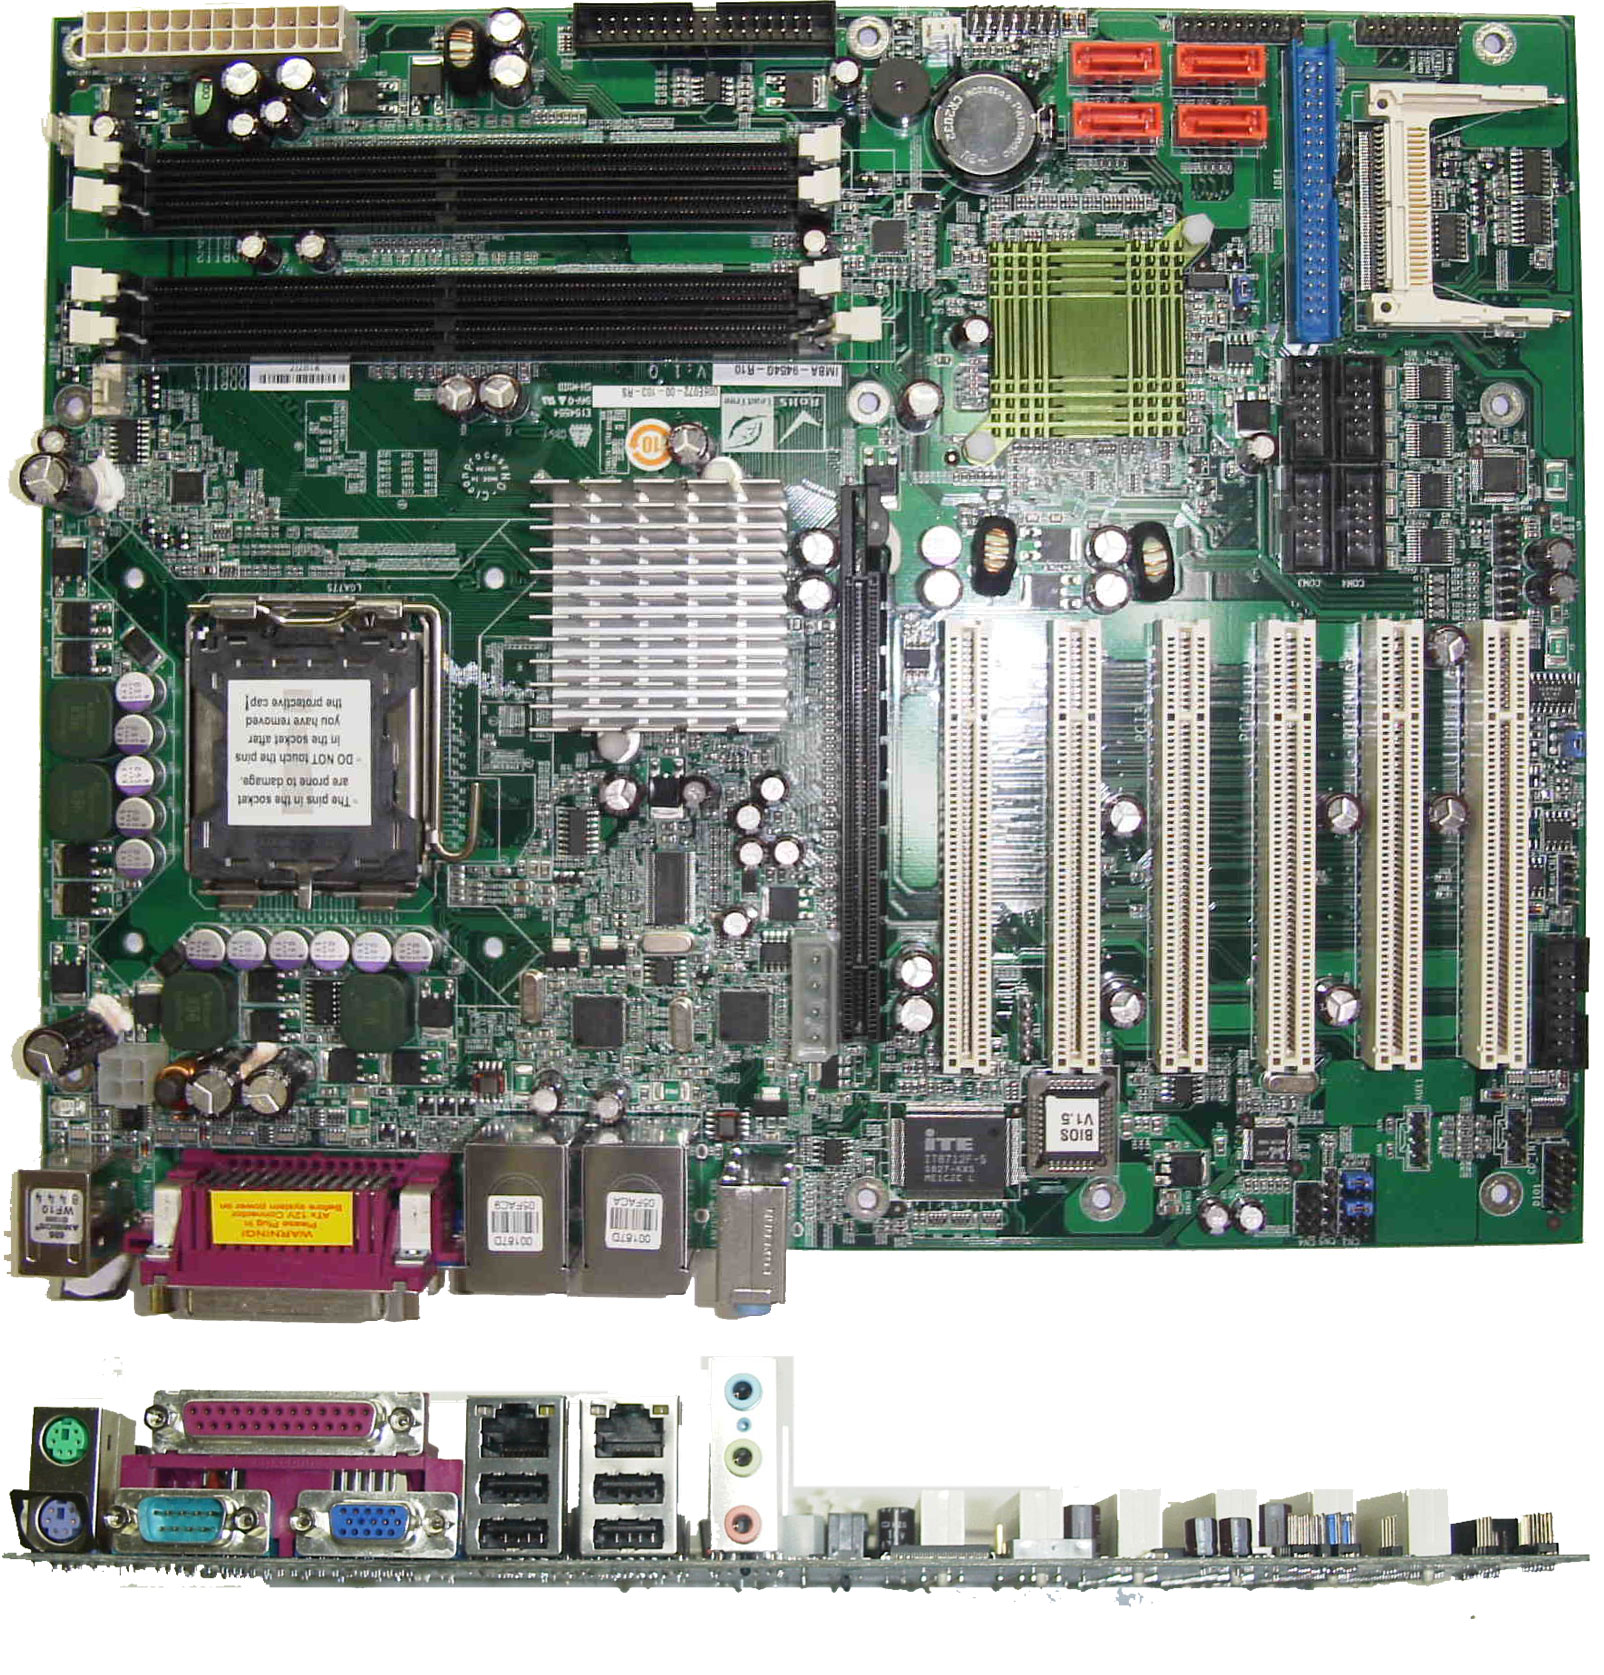 atx motherboard diagram with labels 4 way switch wiring multiple lights uk gchen2014